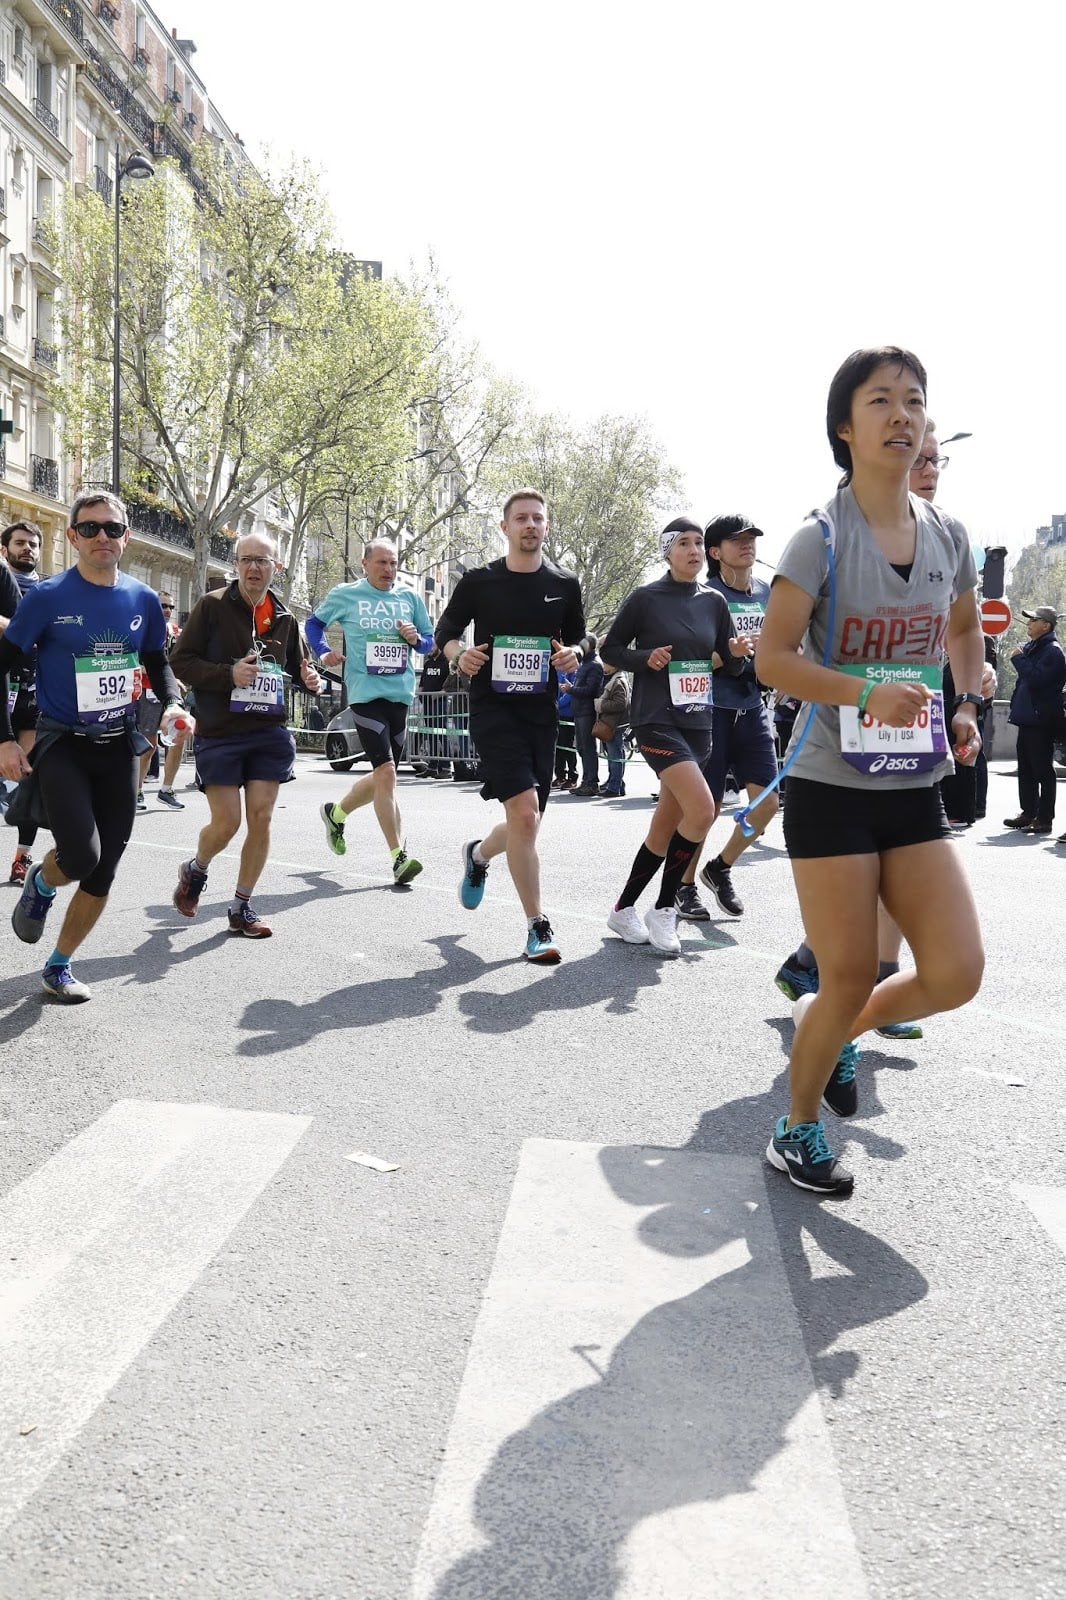 paris marathon during the race